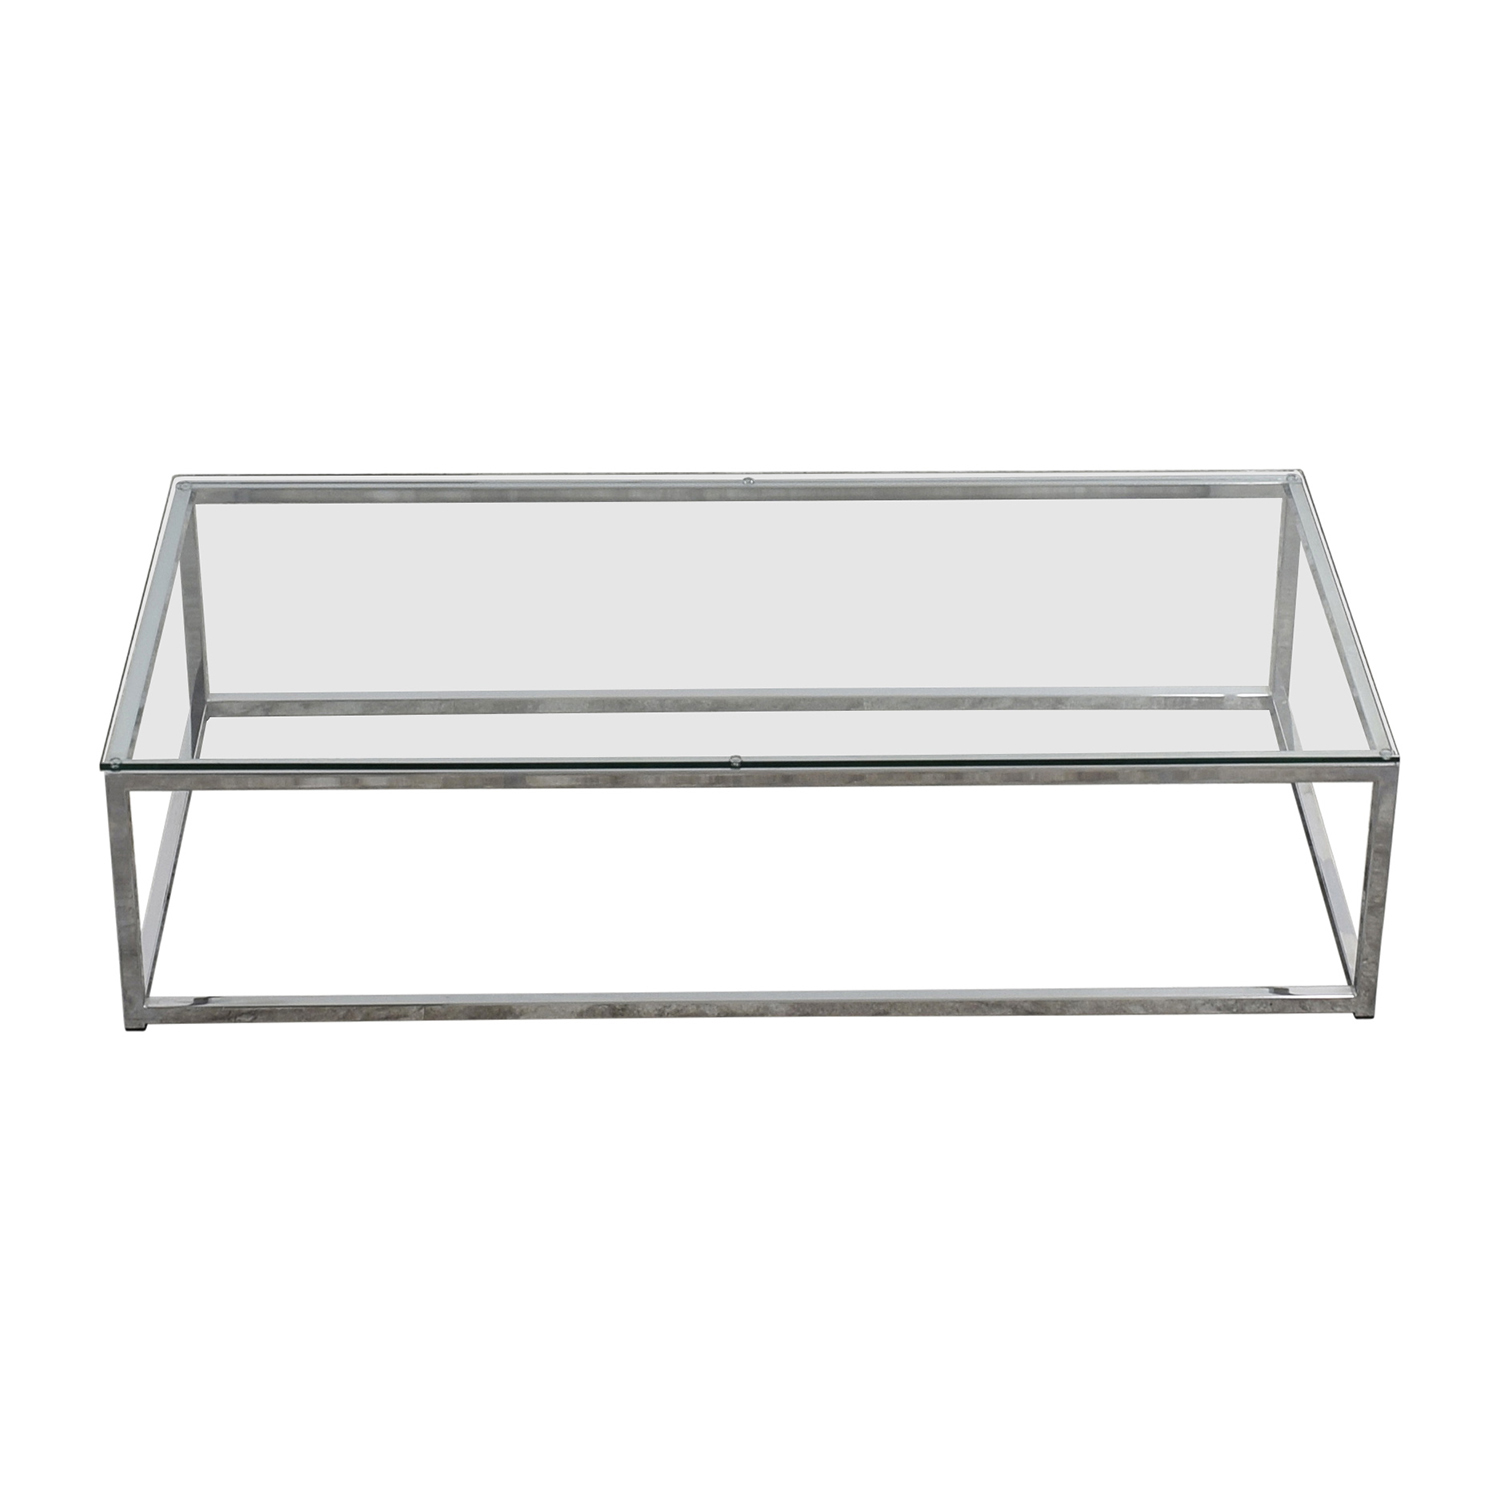 CB2 CB2 Glass and Chrome Coffee Table for sale